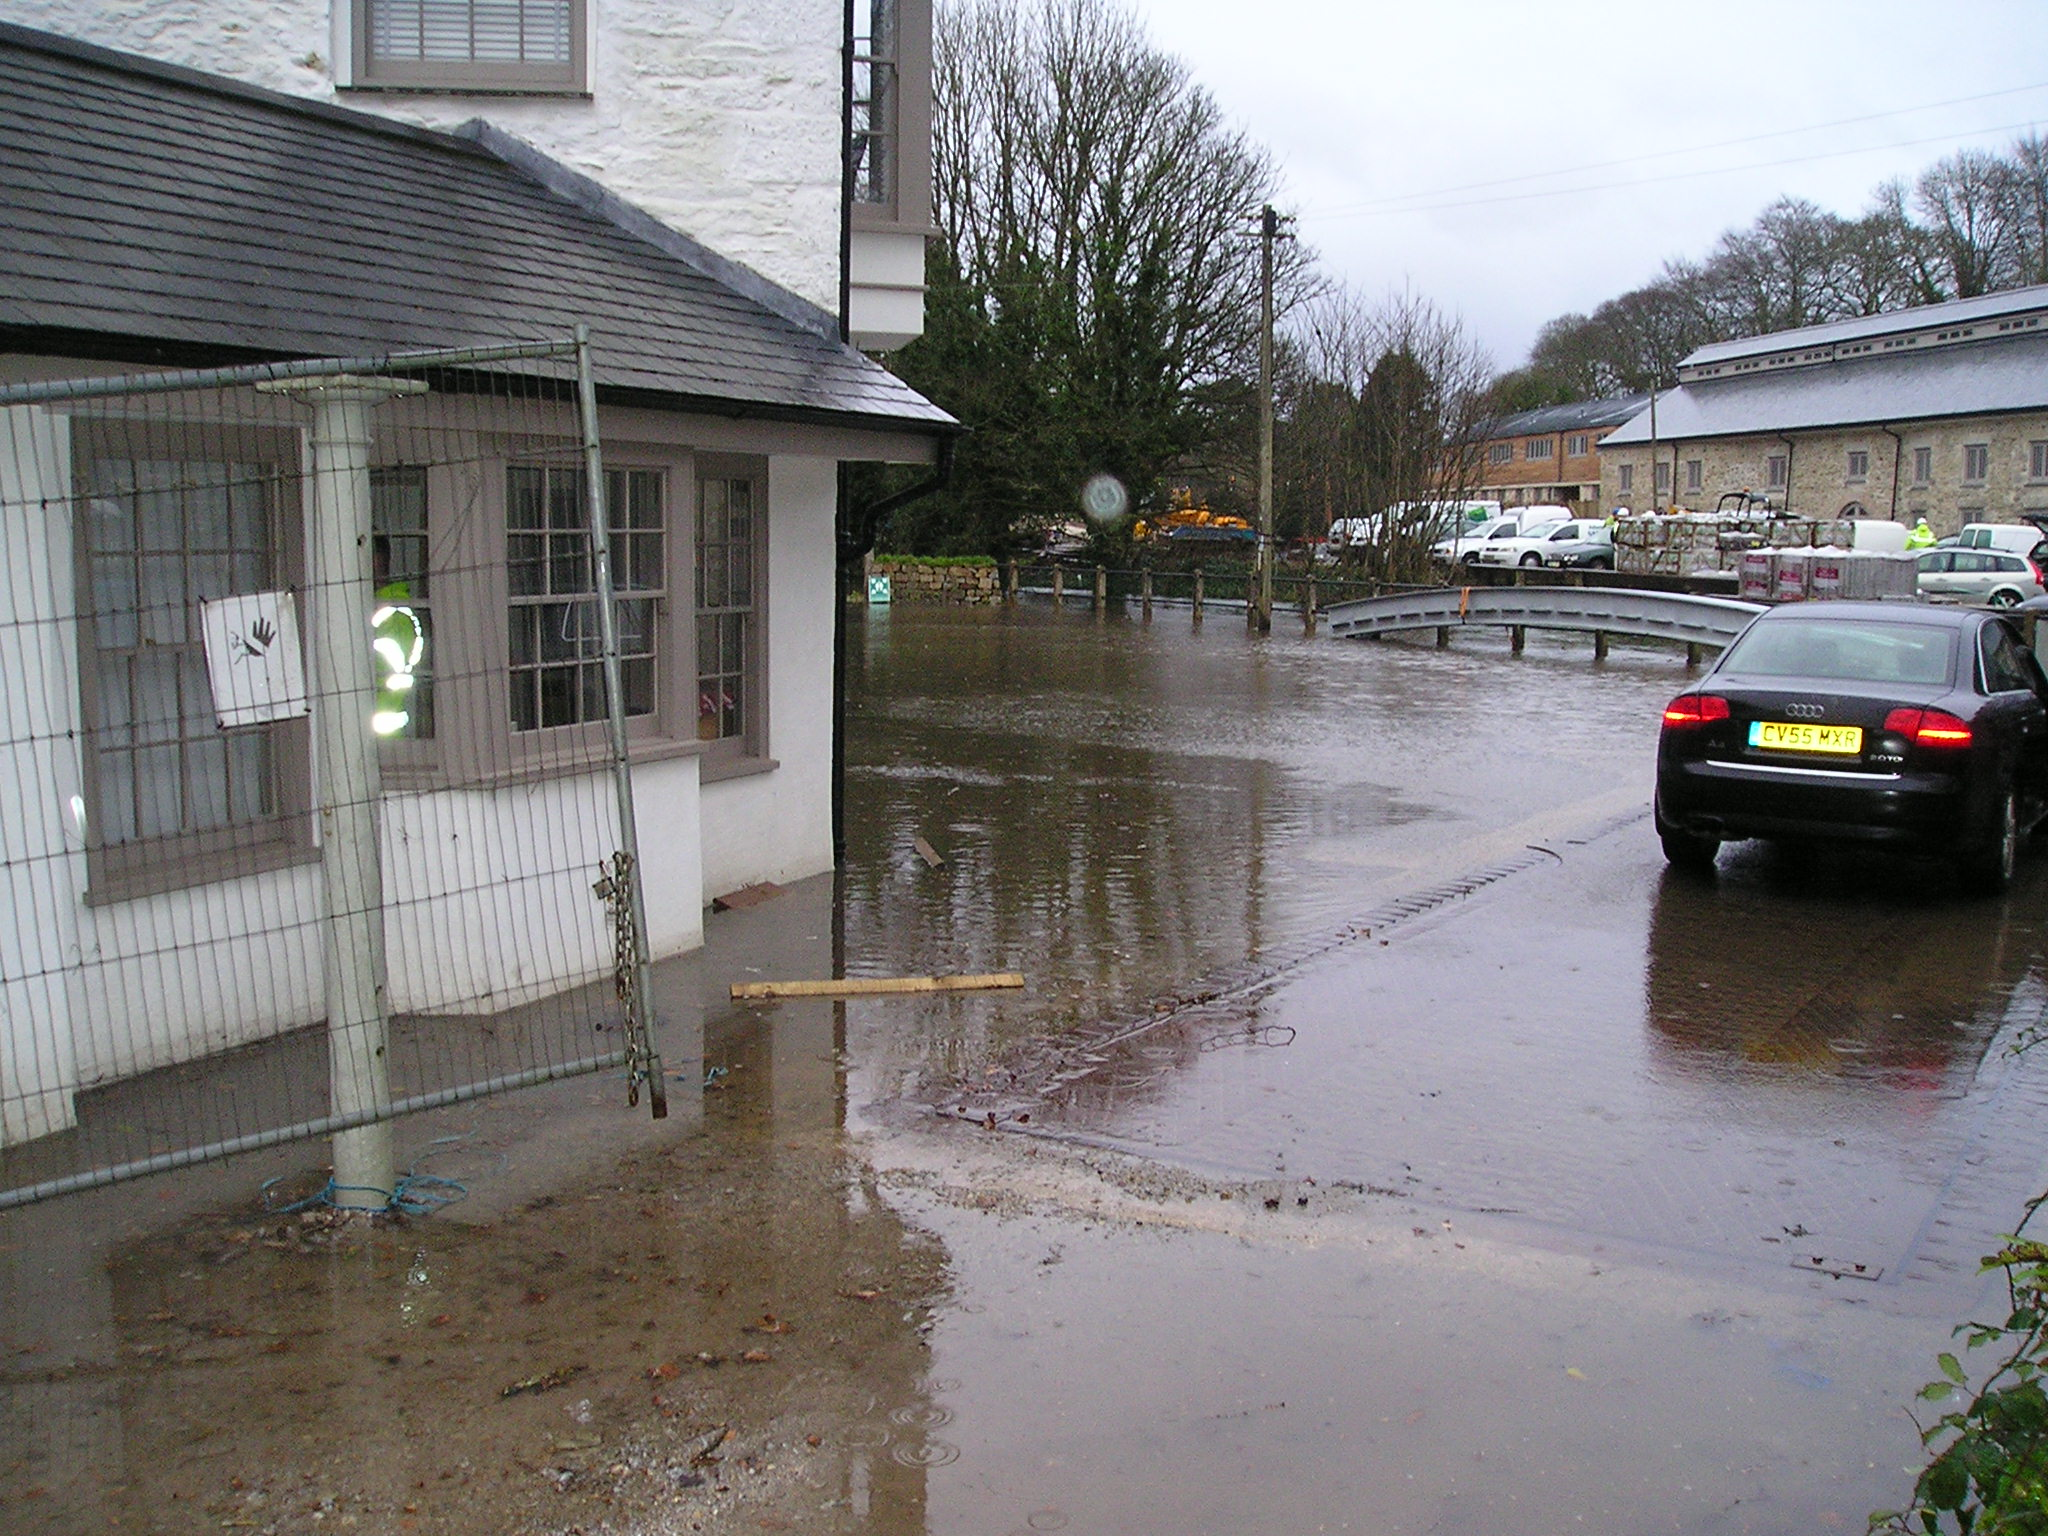 Flooding at Perran Foundry